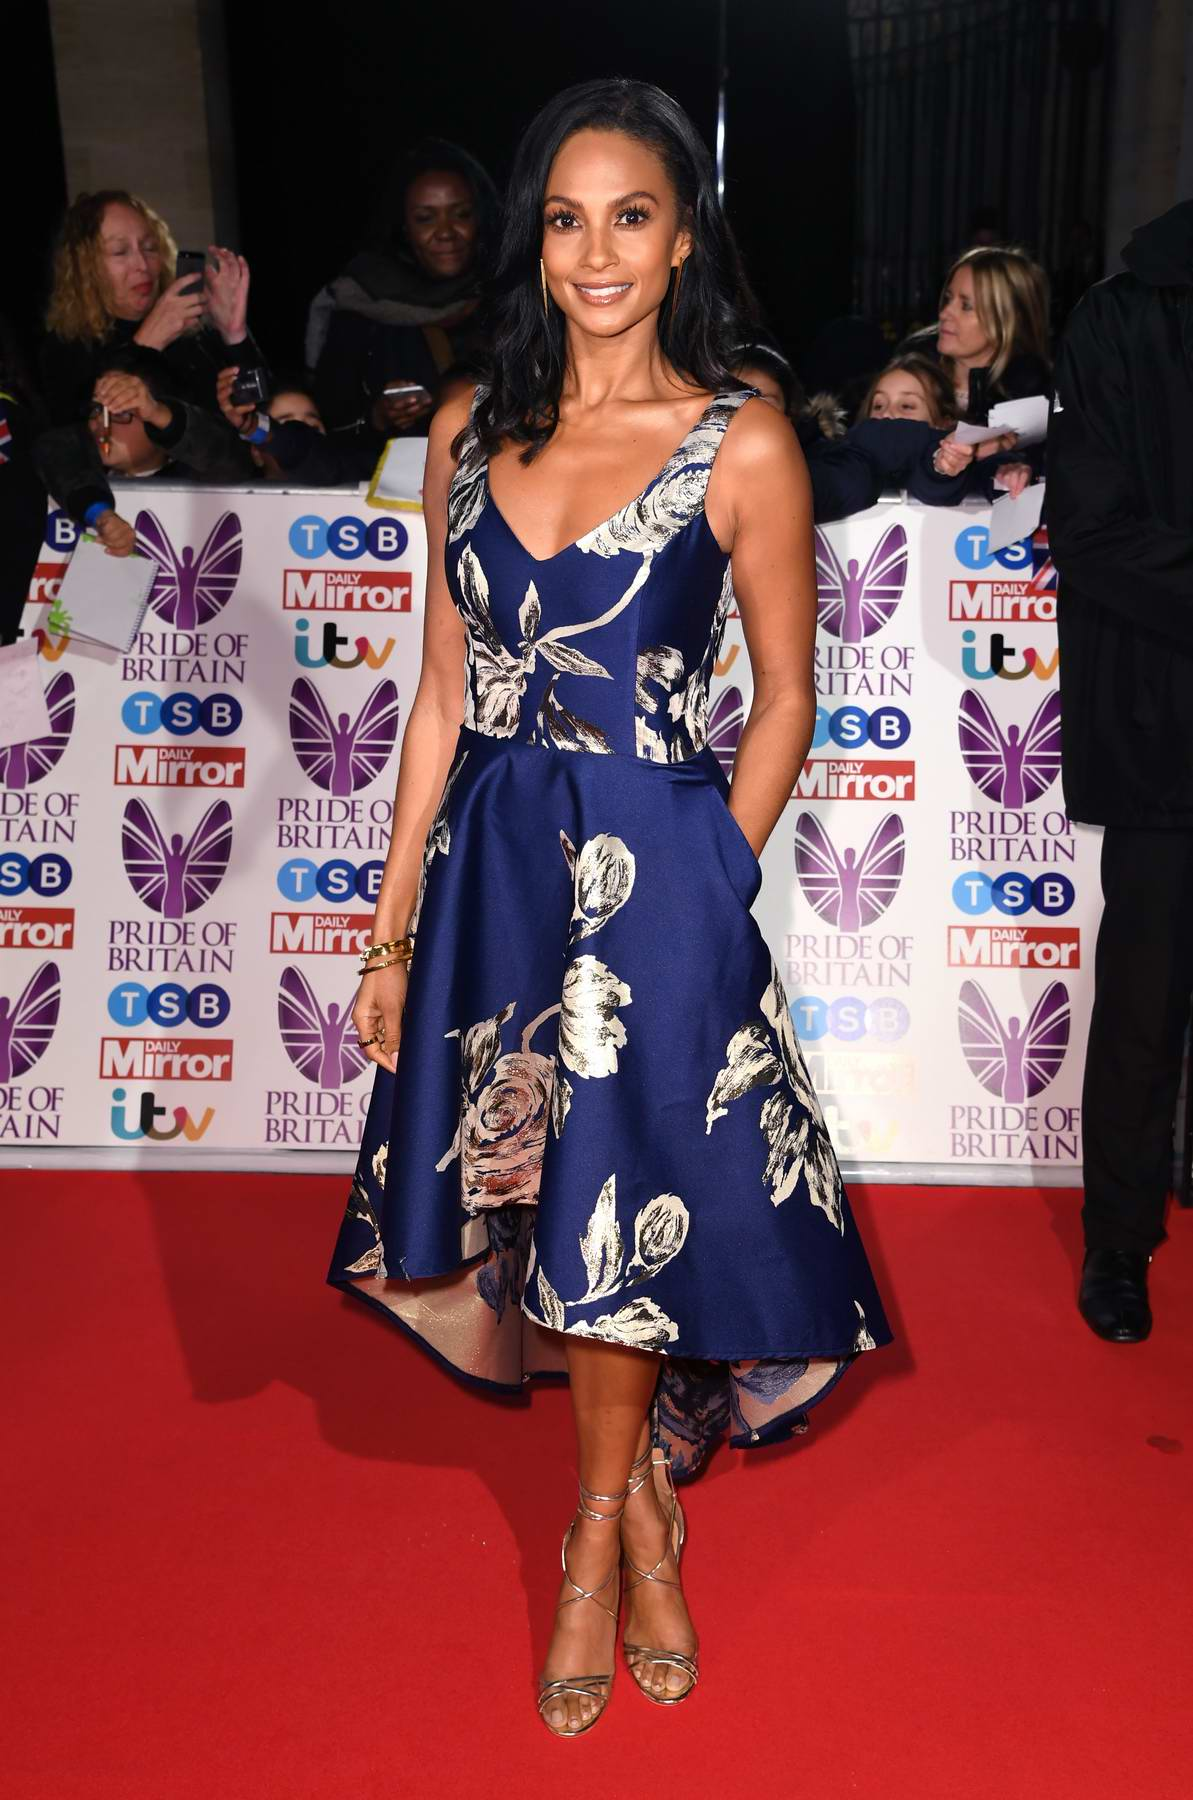 Alesha Dixon at the Pride of Britain Awards held at the Grosvenor House in London